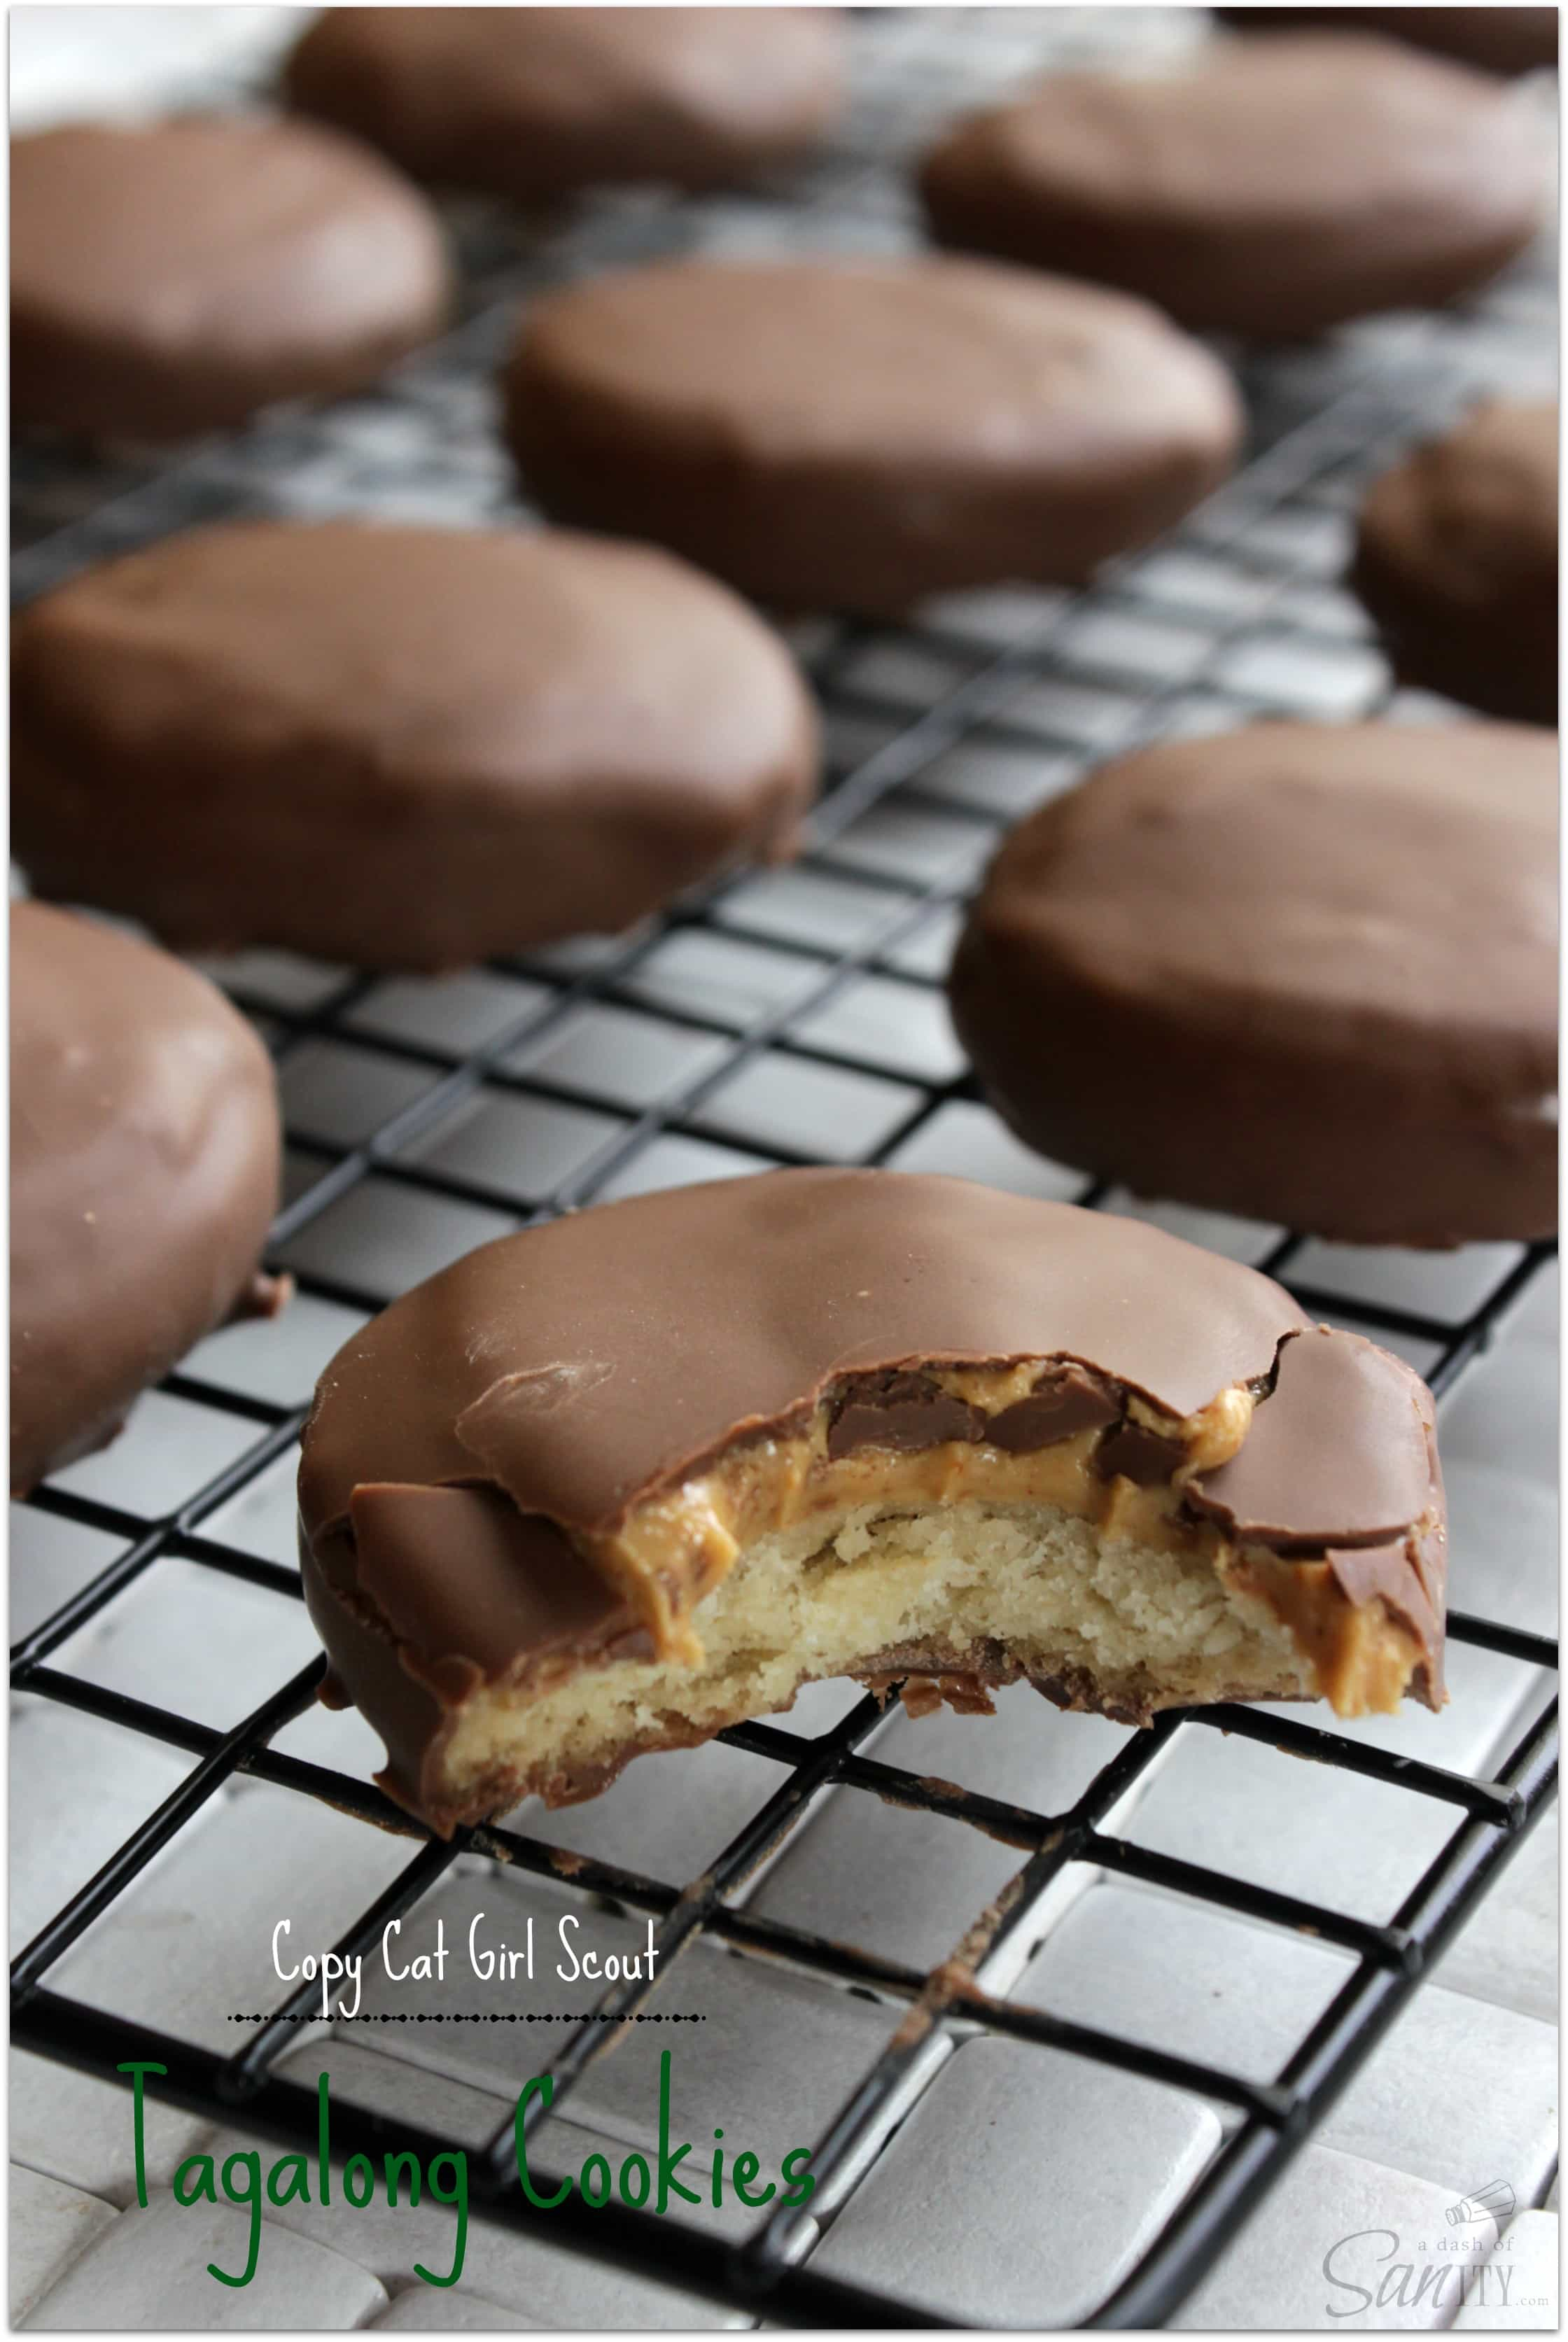 Copycat Girl Scout Tagalong Cookies - A Dash of Sanity